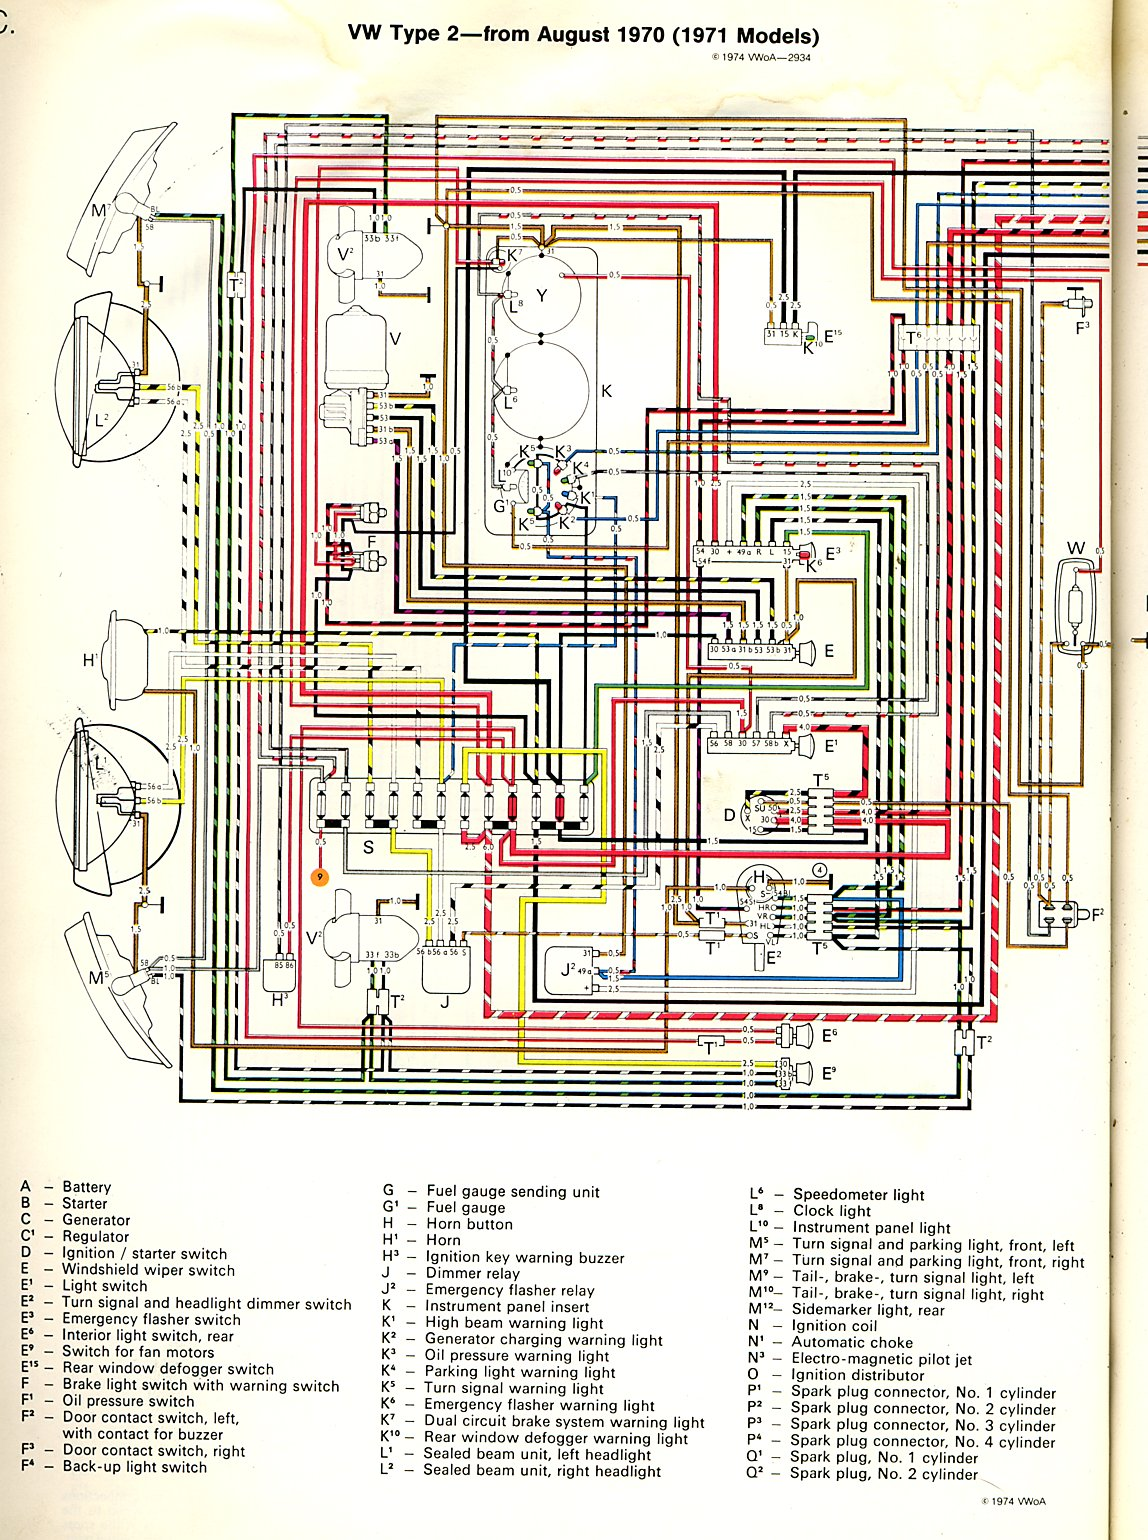 98 Vw Golf Fuse Box Diagram Wiring Library Beetle 1975 Volkswagen Bus Illustration Of U2022 Rh Davisfamilyreunion Us 1998 Cabrio